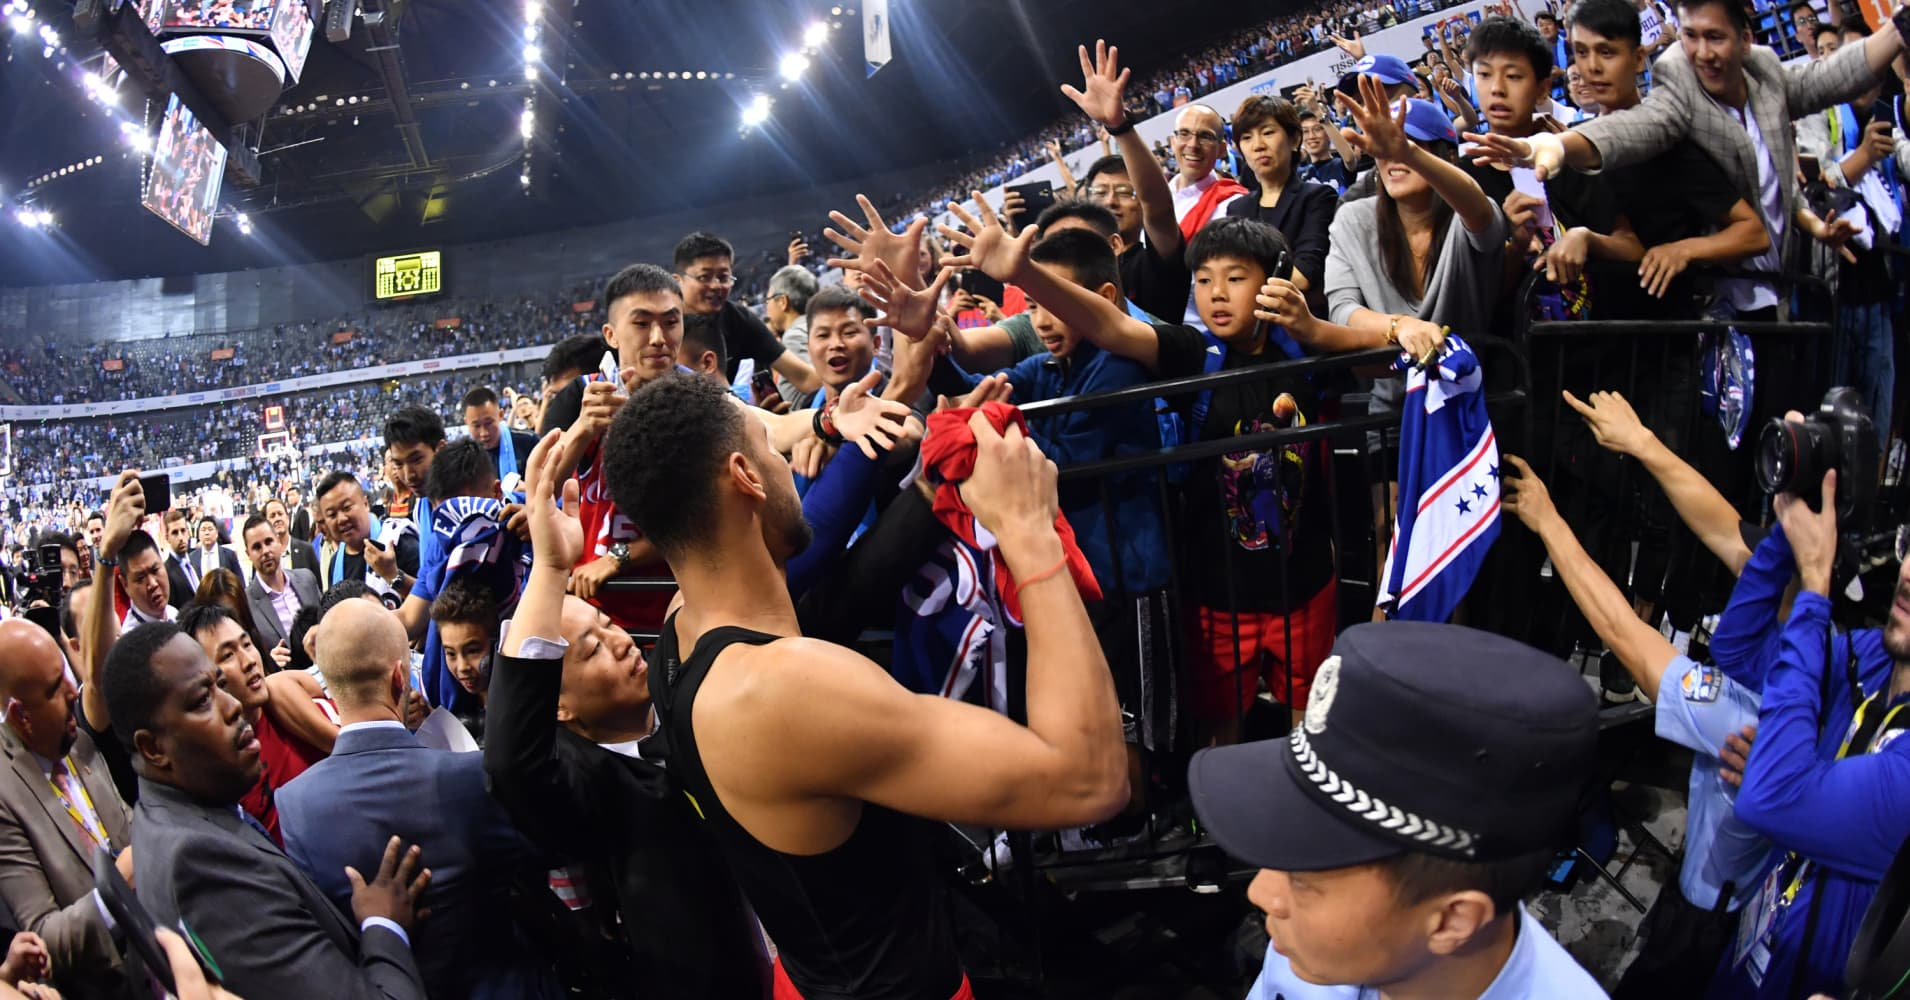 The NBA is China's most popular sports league. Here's how it happened